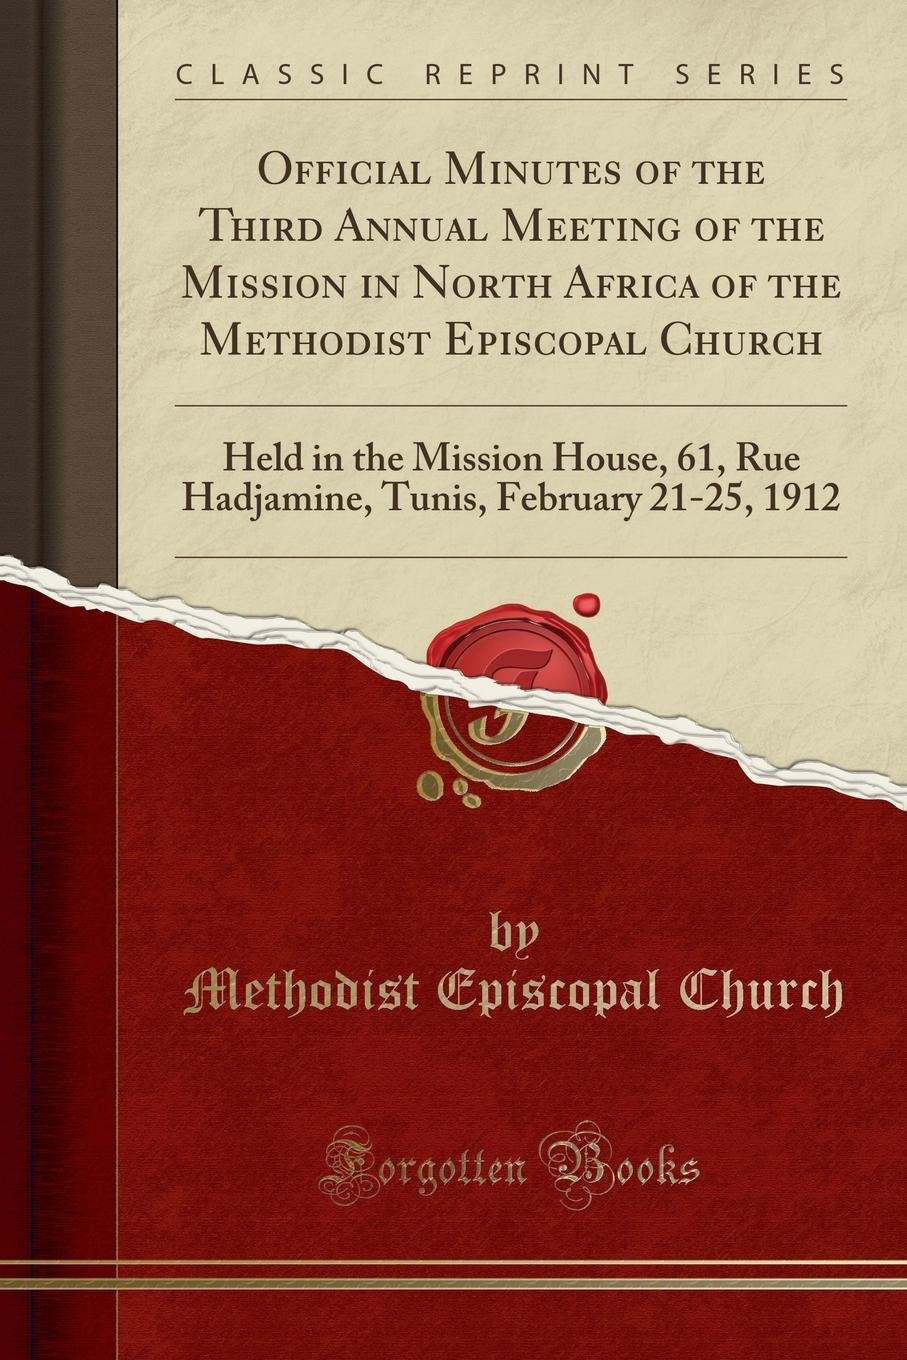 Official Minutes of the Third Annual Meeting of the Mission in North Africa of the Methodist Episcopal Church: Held in the Mission House, 61, Rue ... Tunis, February 21-25, 1912 (Classic Reprint) PDF